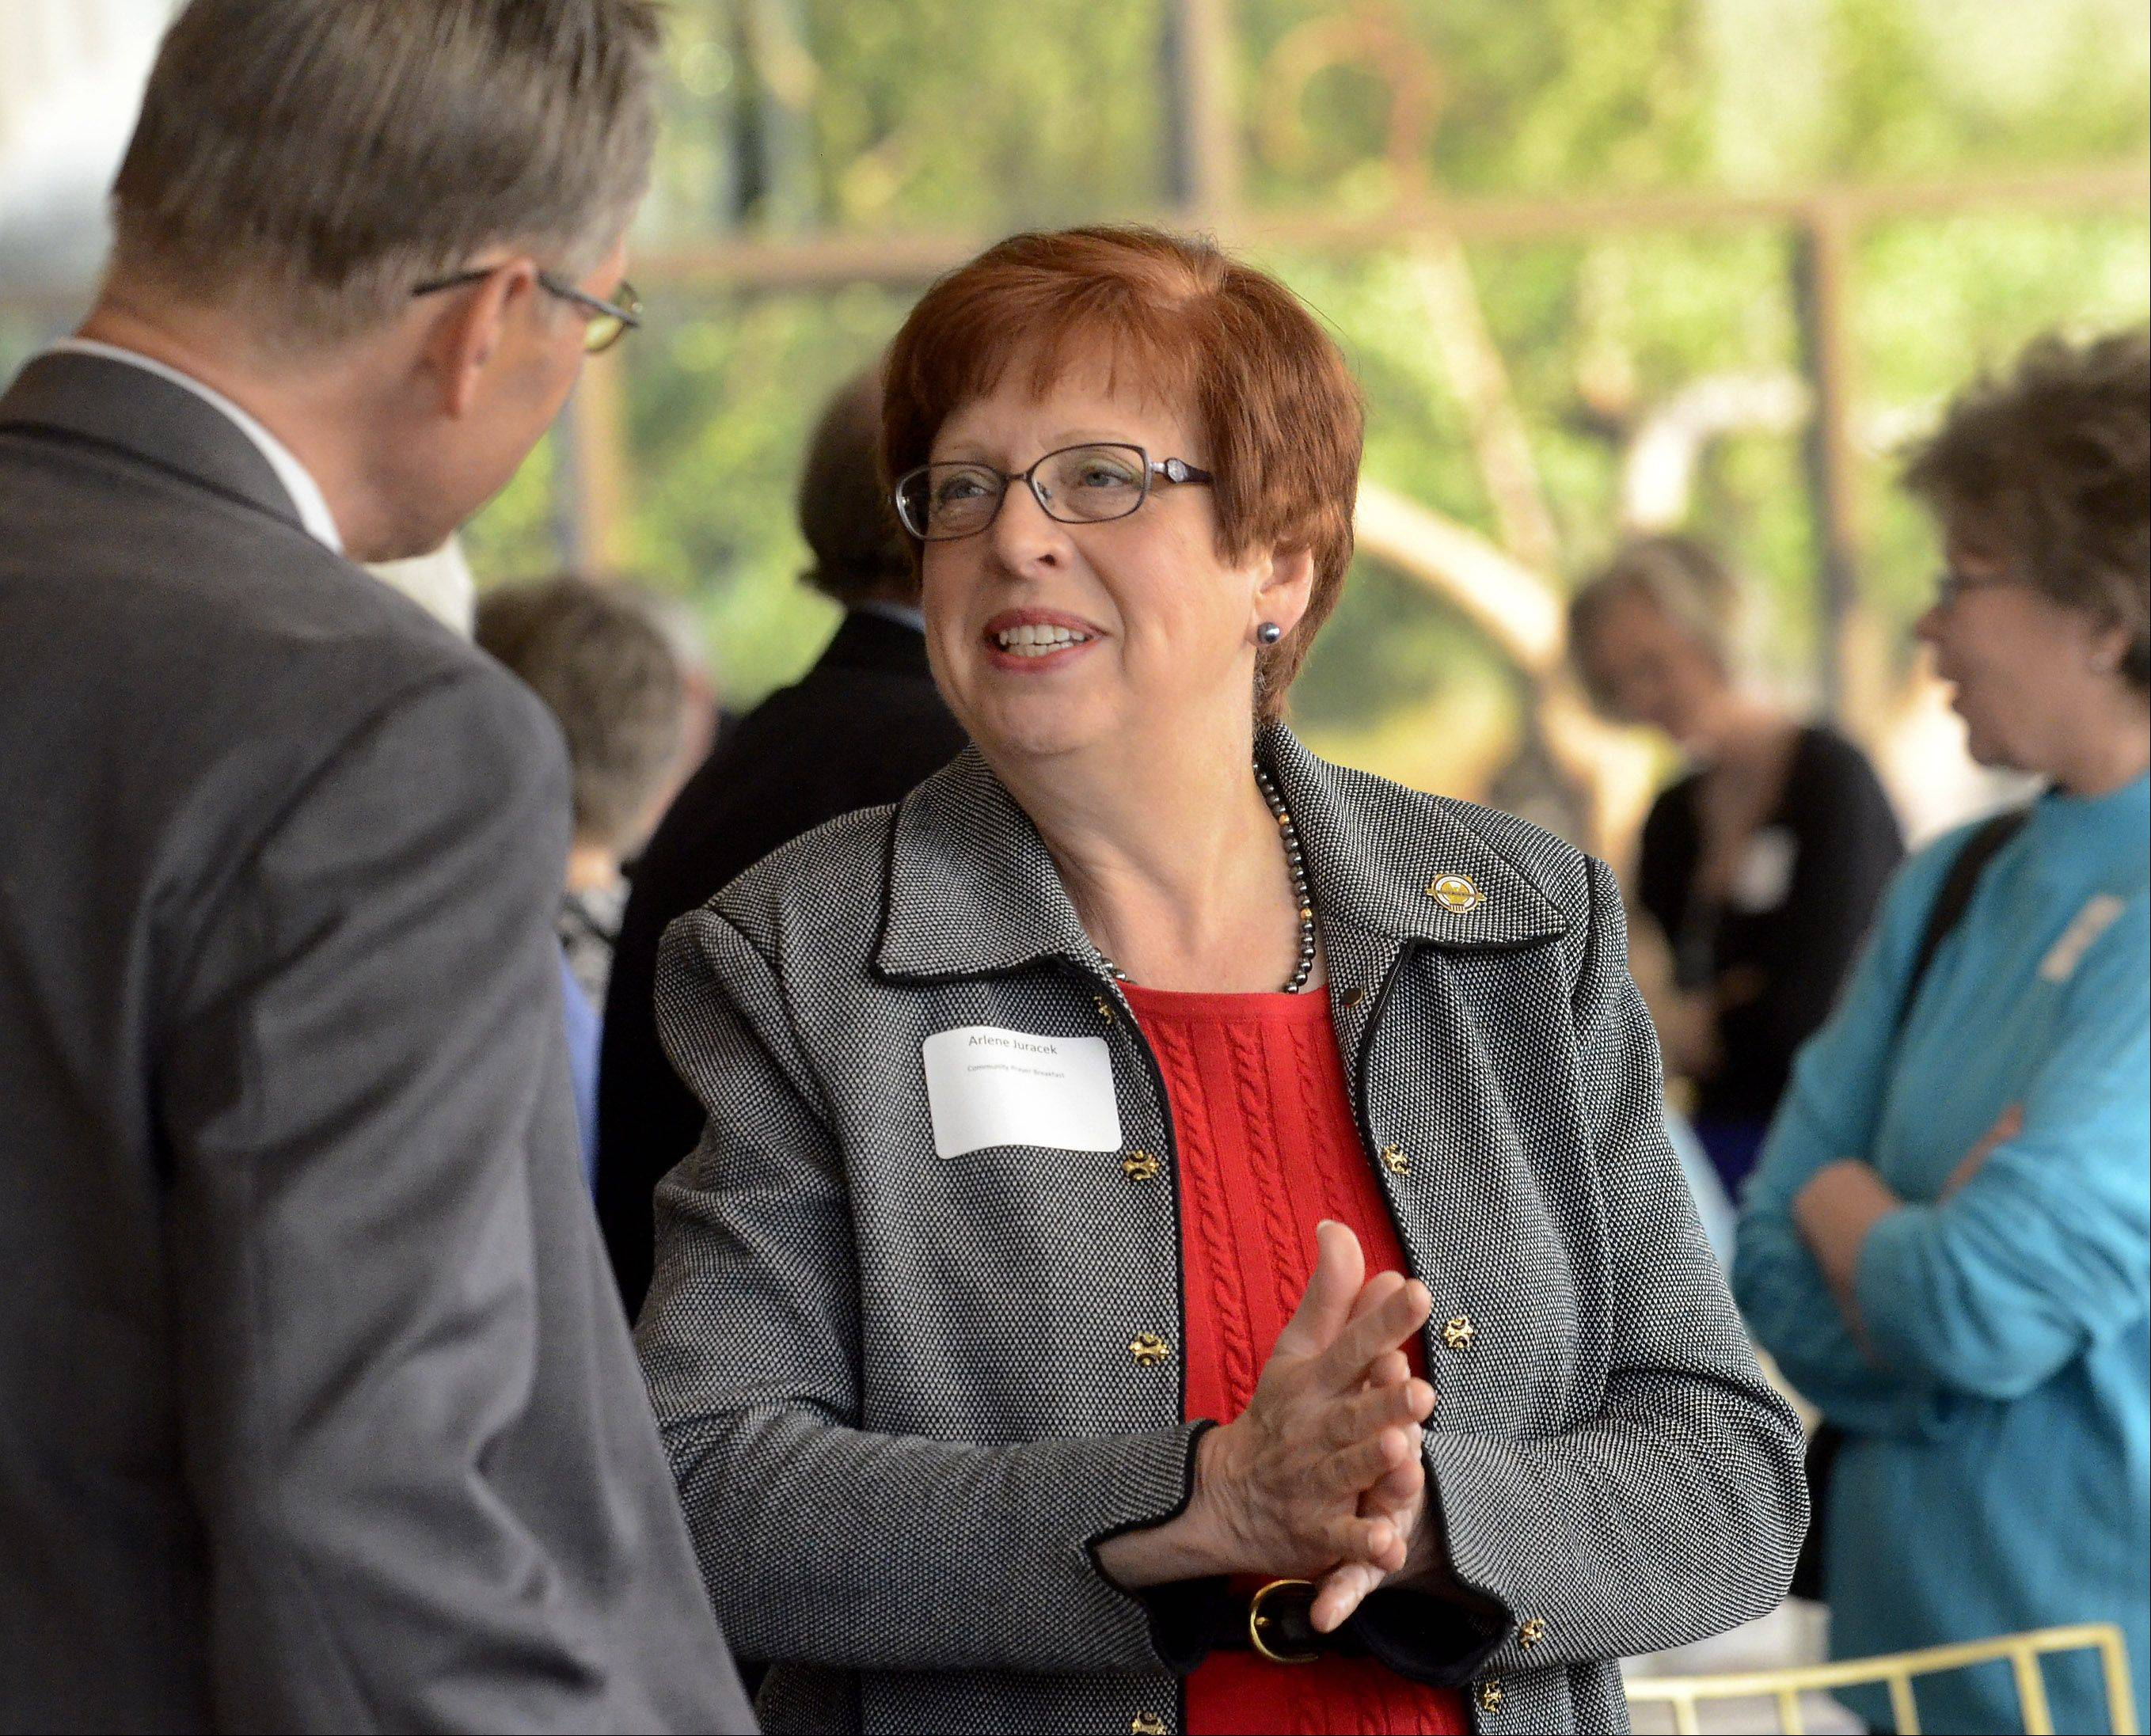 Incoming Mount Prospect Mayor Arlene Juracek chats with guests before the village's annual Community Prayer Breakfast.